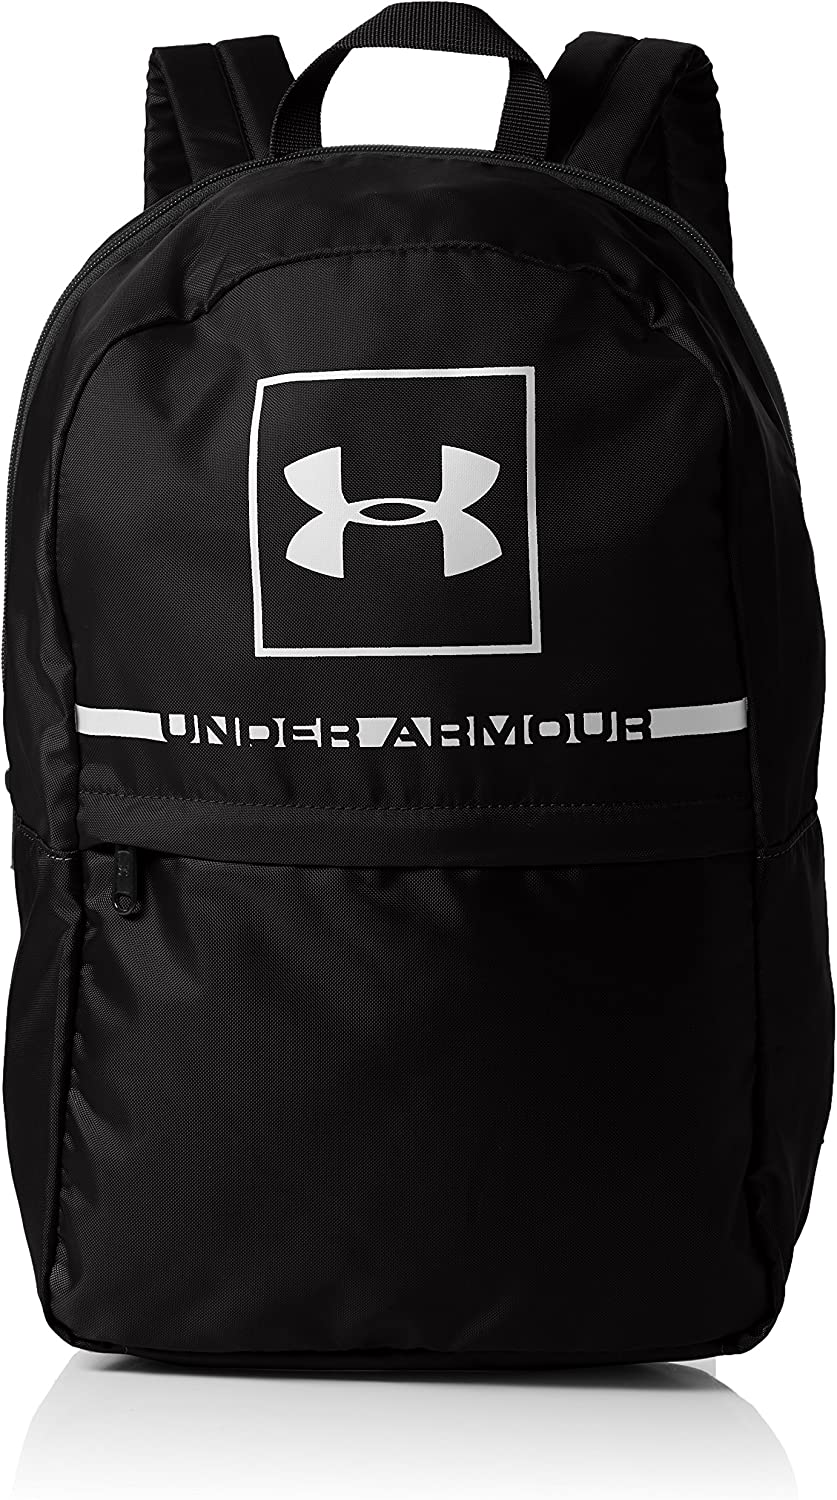 UNDER ARMOUR PROJECT 5 GYM SCHOOL COLLEGE FLIGHT SPORTS RUCKSACK BAG BACKPACK